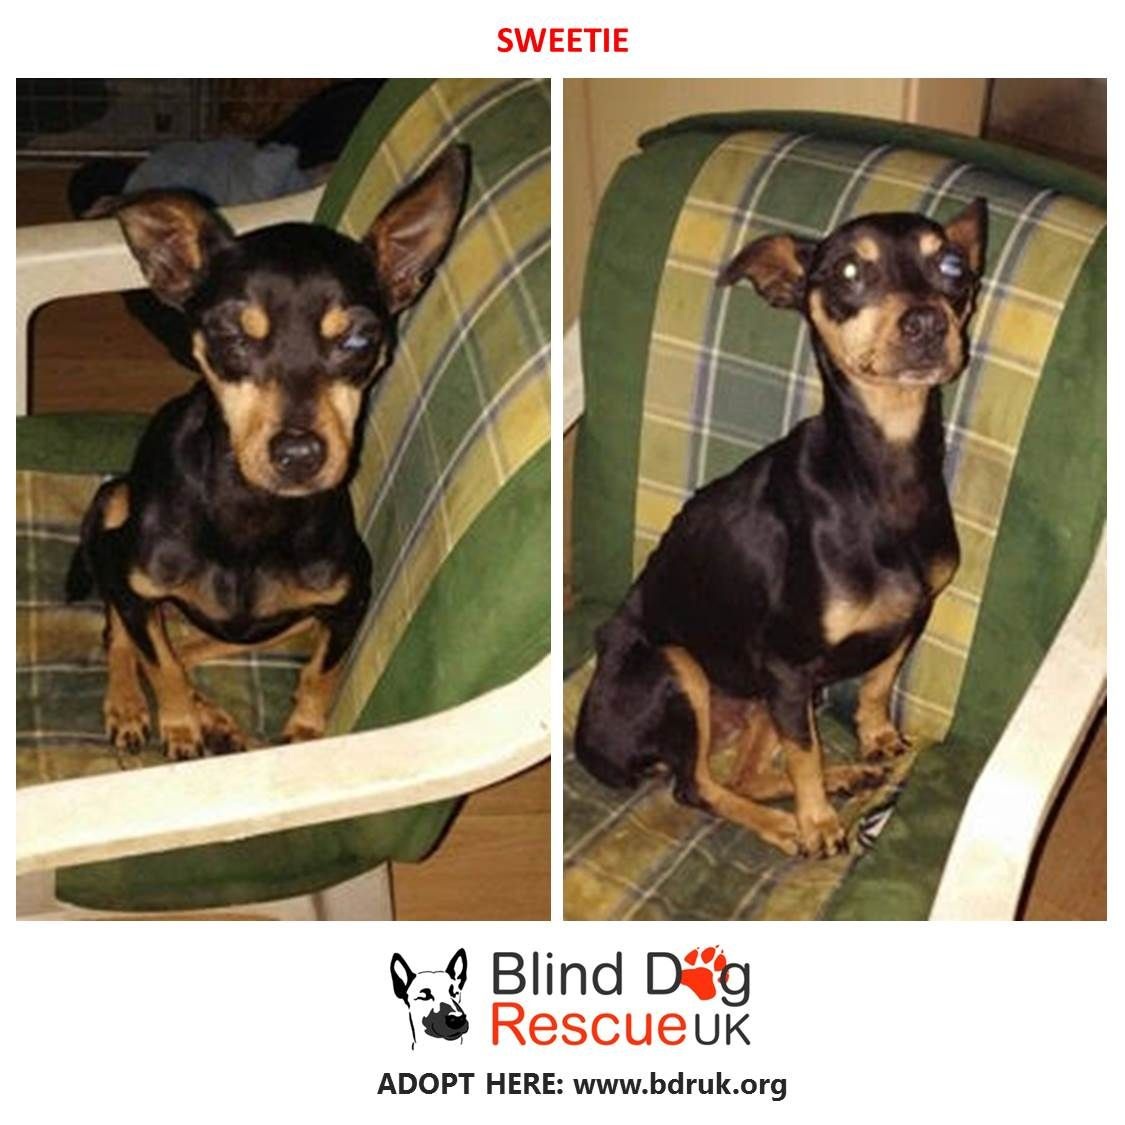 Sweetie Is A Blind Miniature Pincher Cross Who Was Rescued From The Pound She Is Young Very Friendly And Social And Needs Dog Rescue Uk Dog Adoption Blind Dog